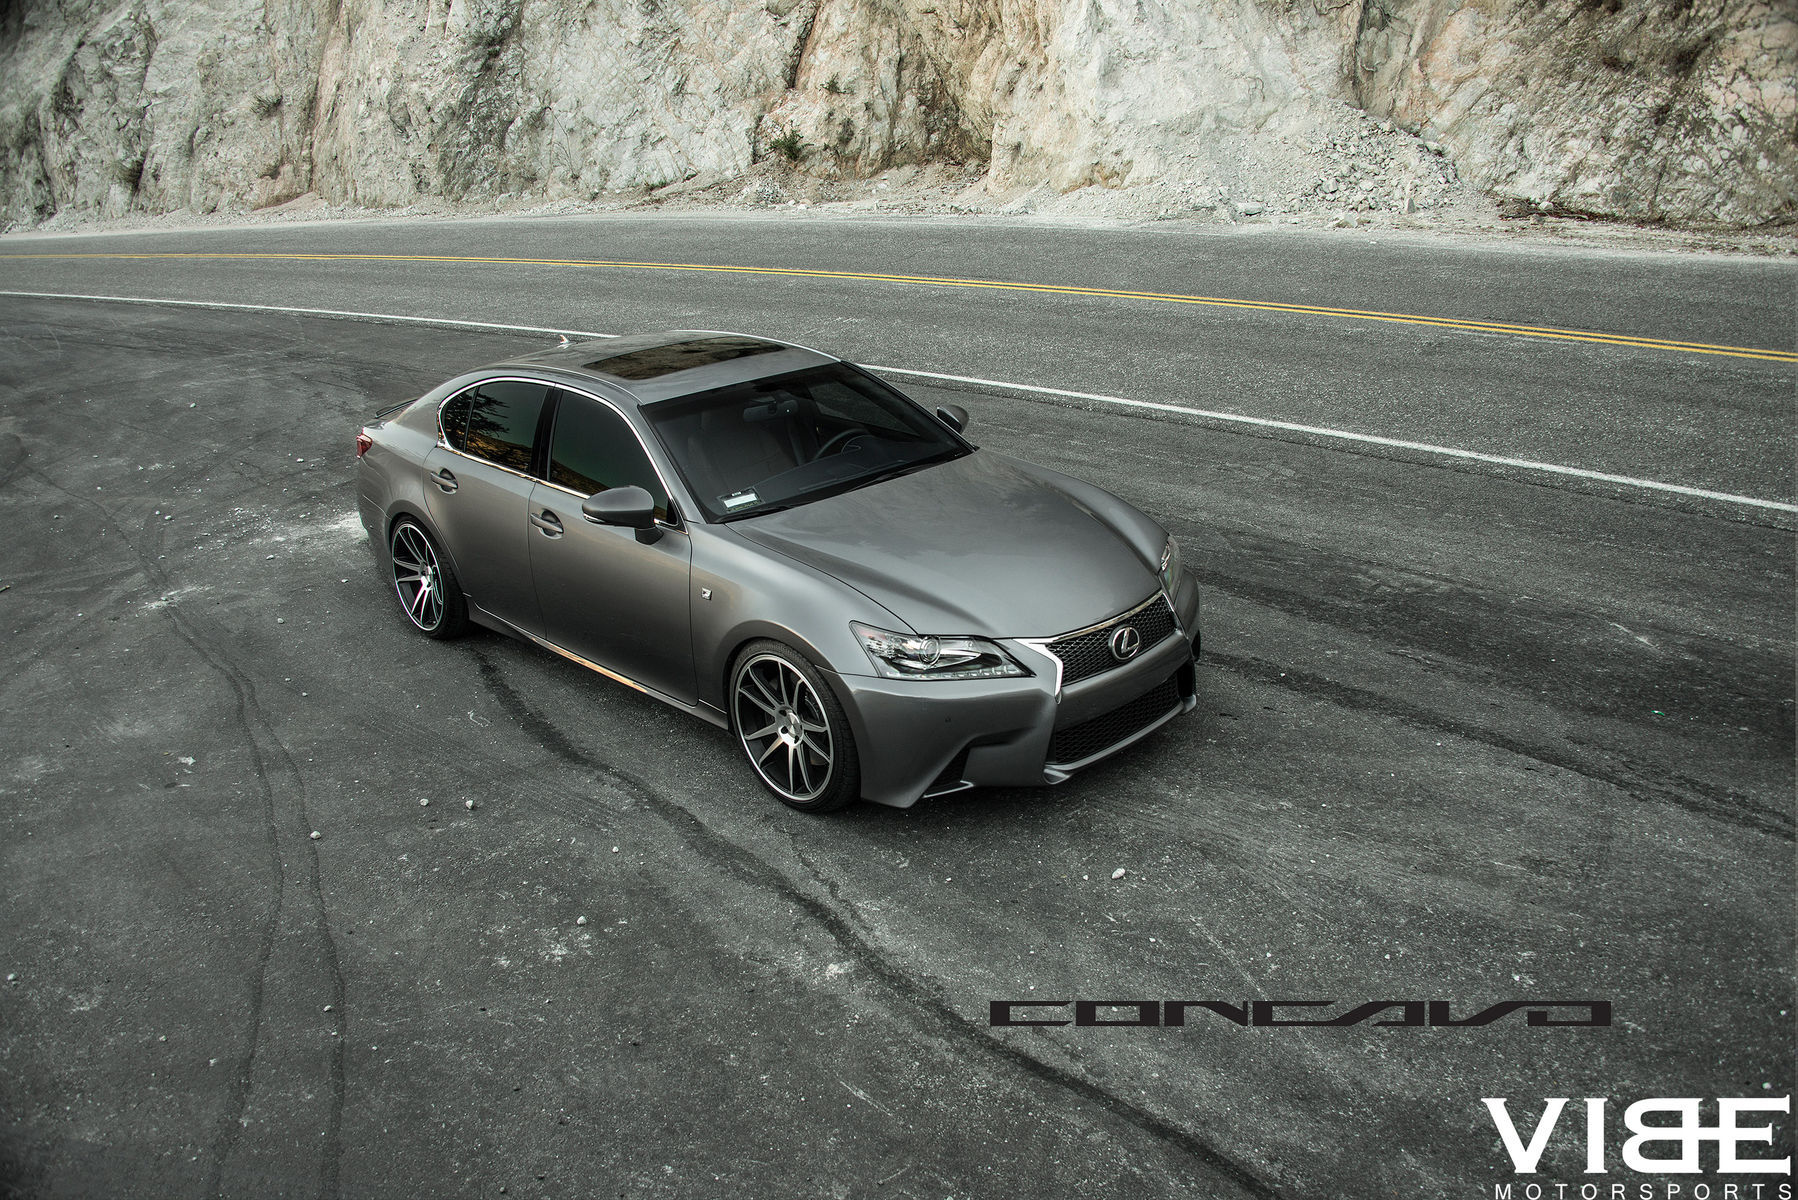 lowered gs350 f sport on concavo wheels full body shot. Black Bedroom Furniture Sets. Home Design Ideas